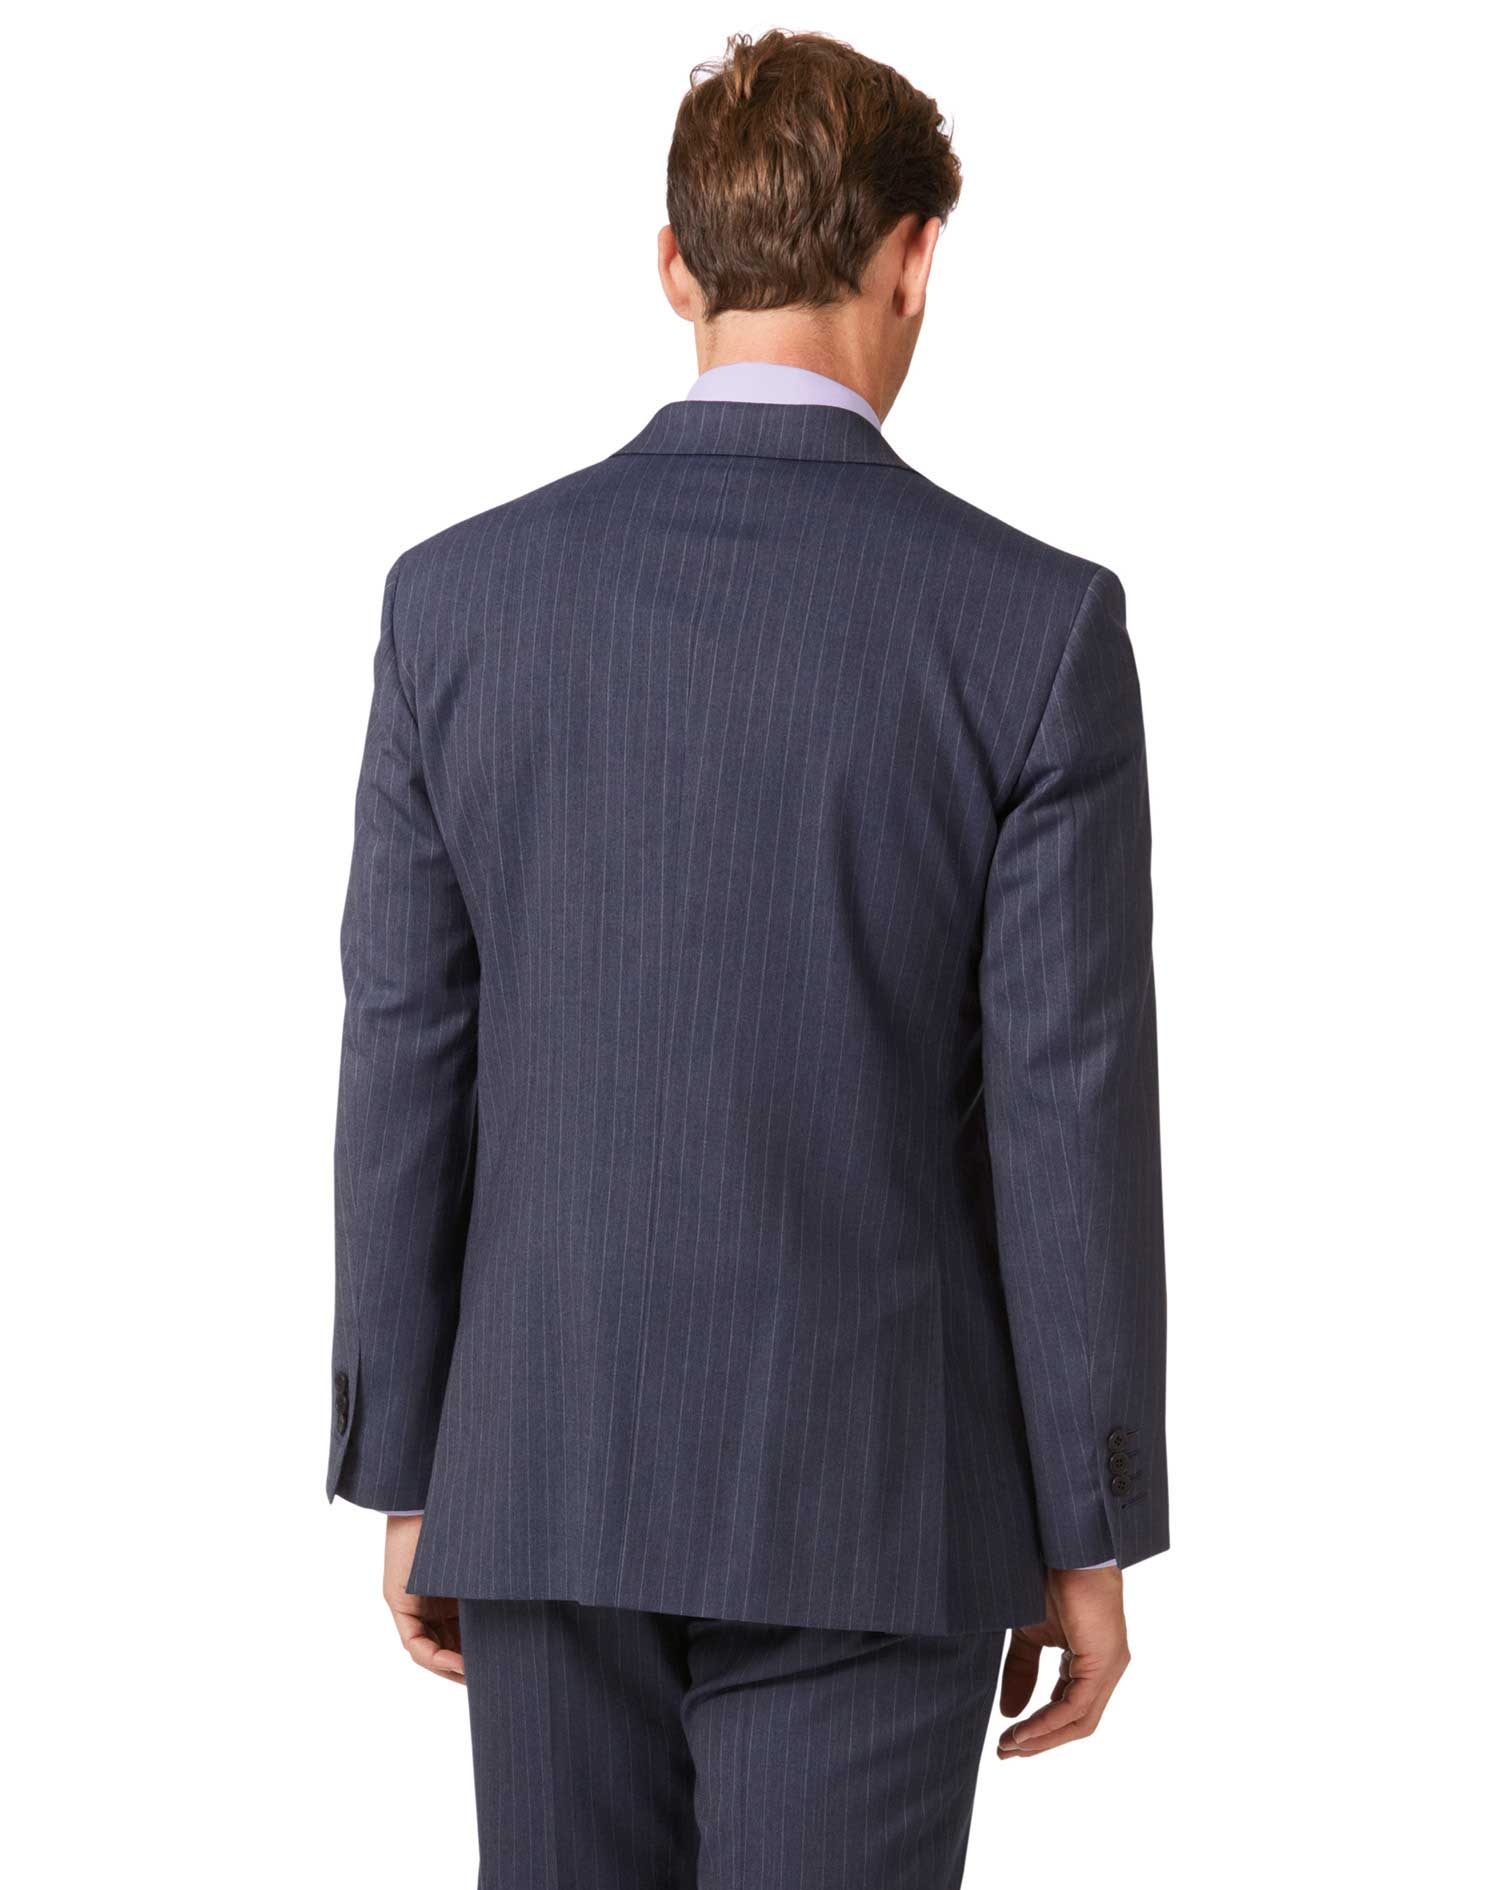 Airforce stripe classic fit Panama business suit jacket